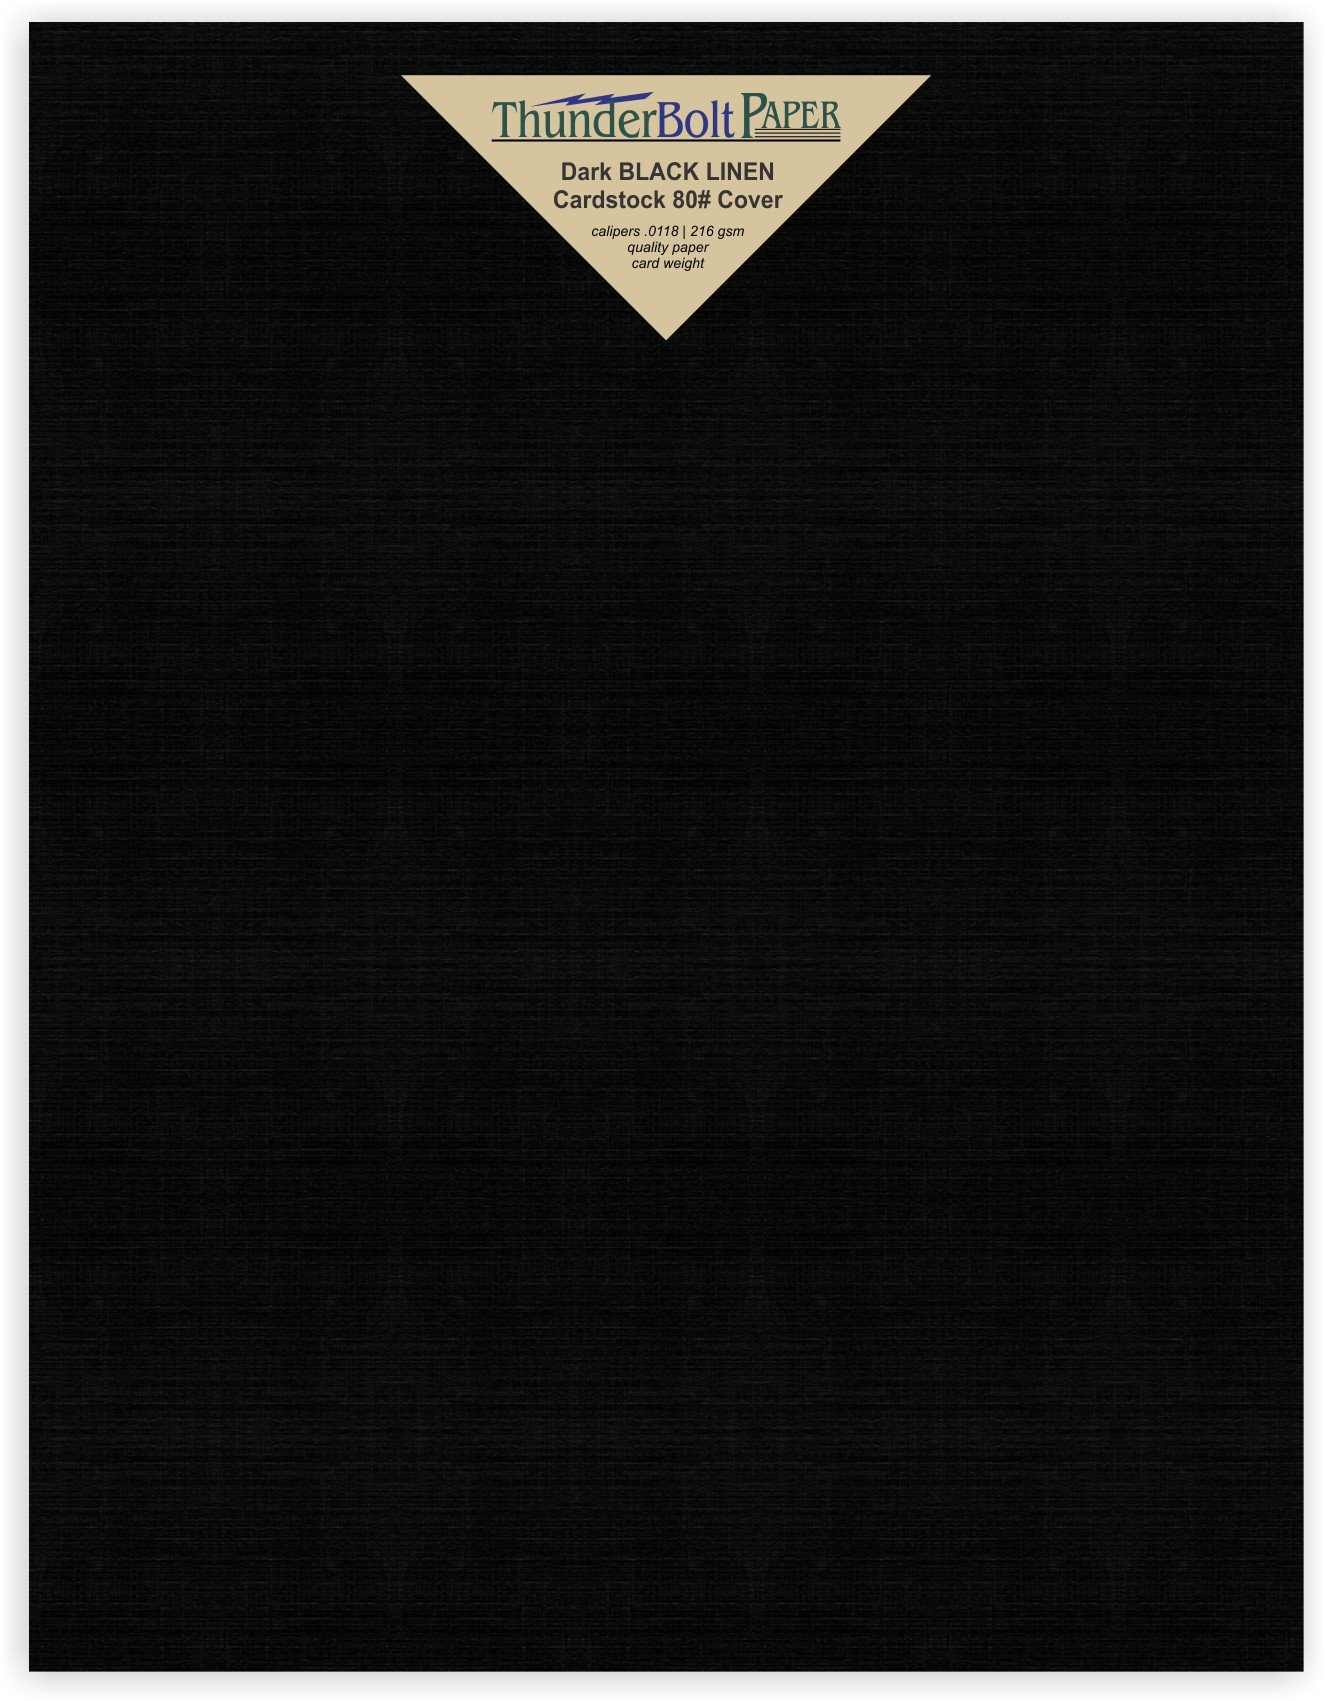 25 Black Linen 80# Cover Paper Sheets -8.5'' X 11'' (8.5X11 Inches) Standard Letter|Flyer Size - Card Weight - Deep Dye, Fine Linen Textured Finish - Quality Cardstock